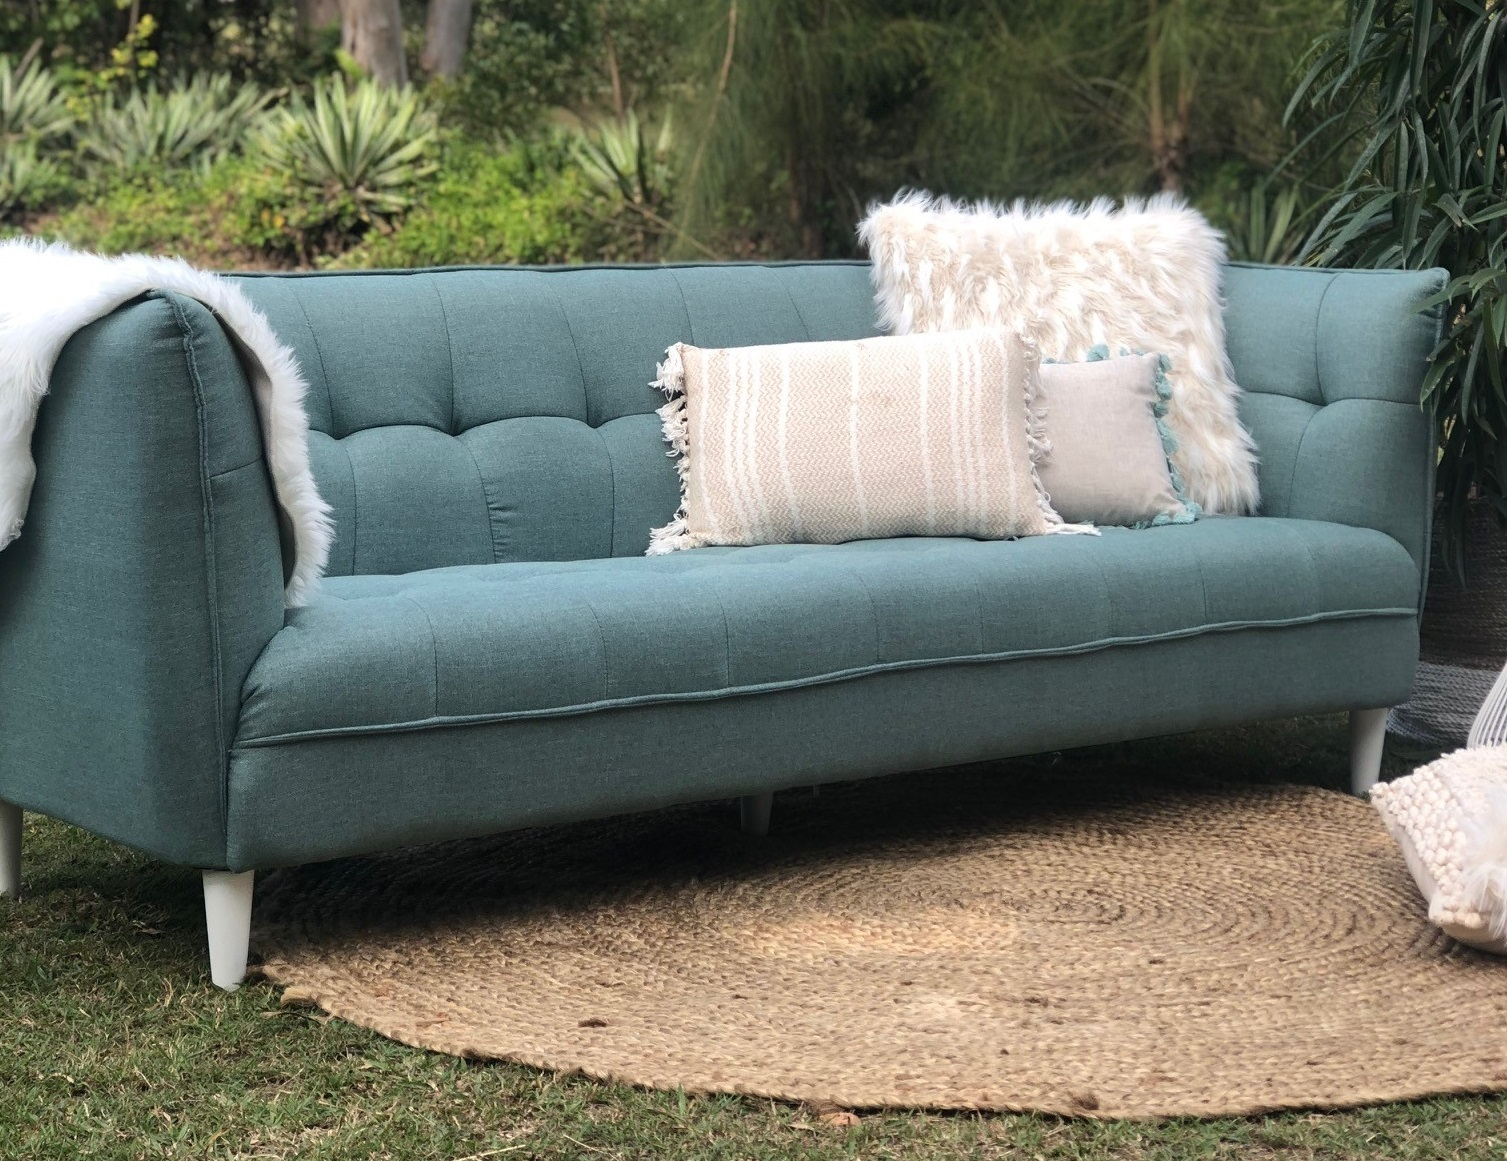 Sage press button sofa - Splash Events, Noosa & Sunshine Coast